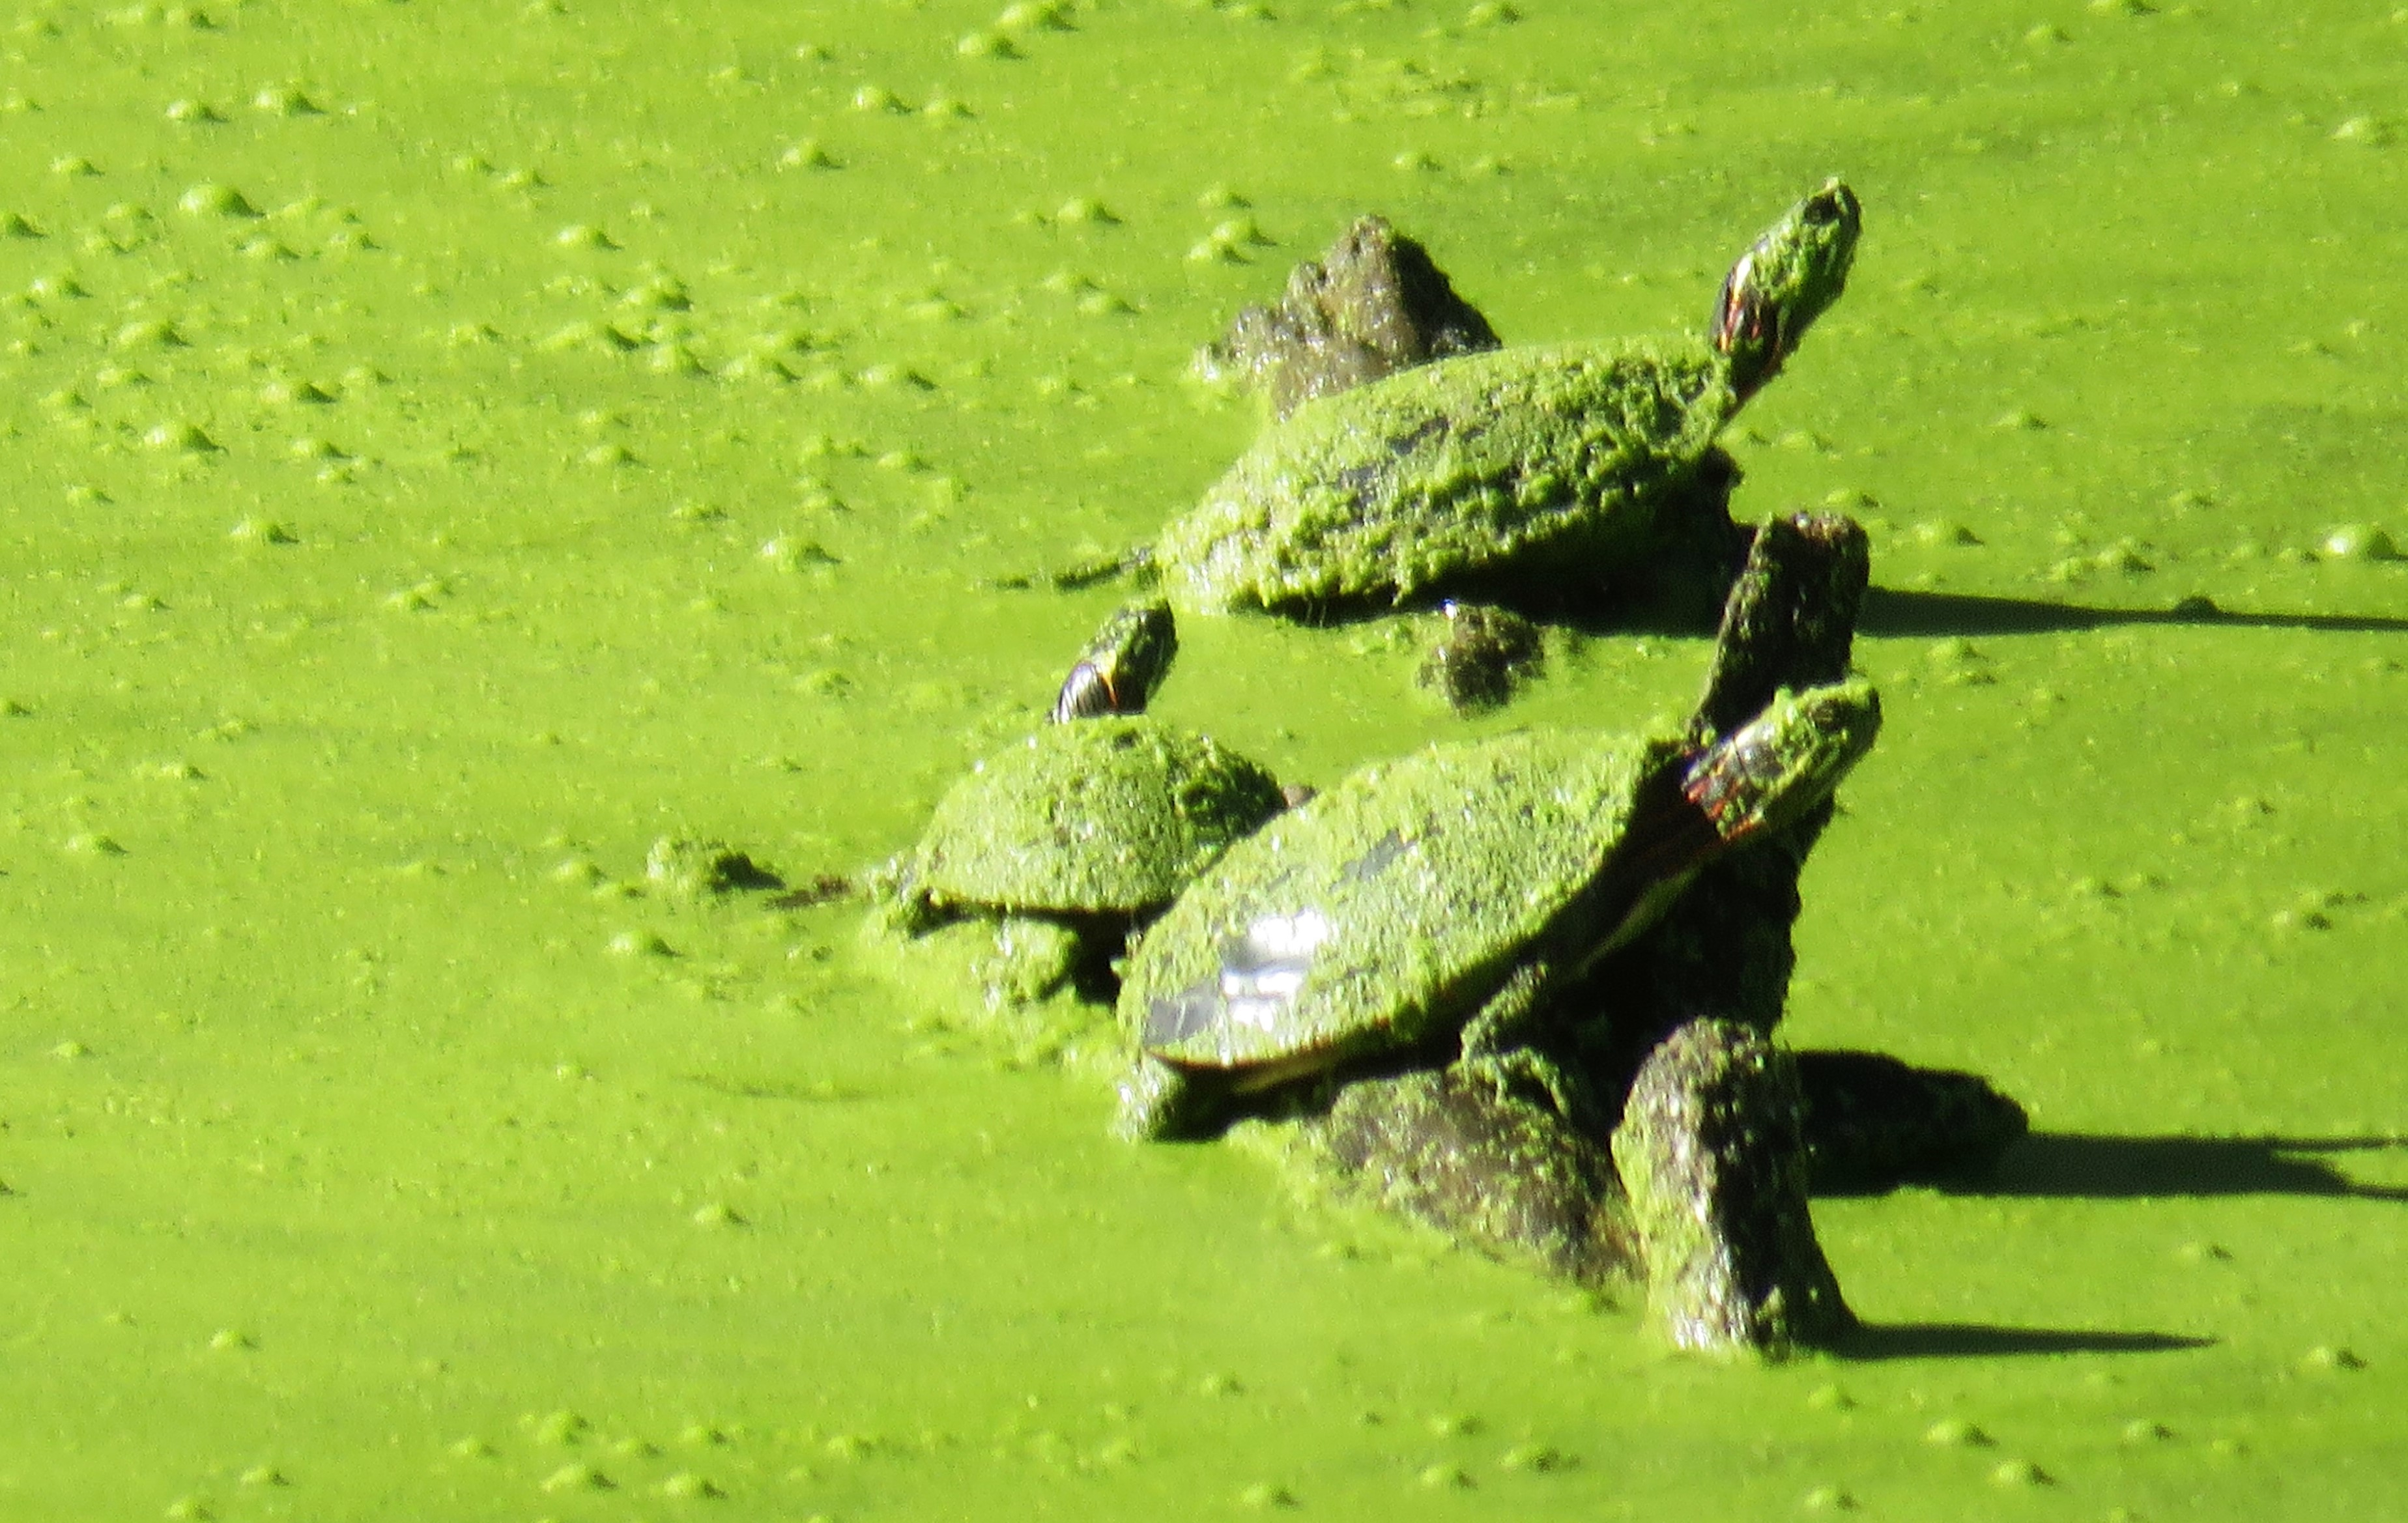 Three painted turtles sit on a log in a pond that's covered in duckweed